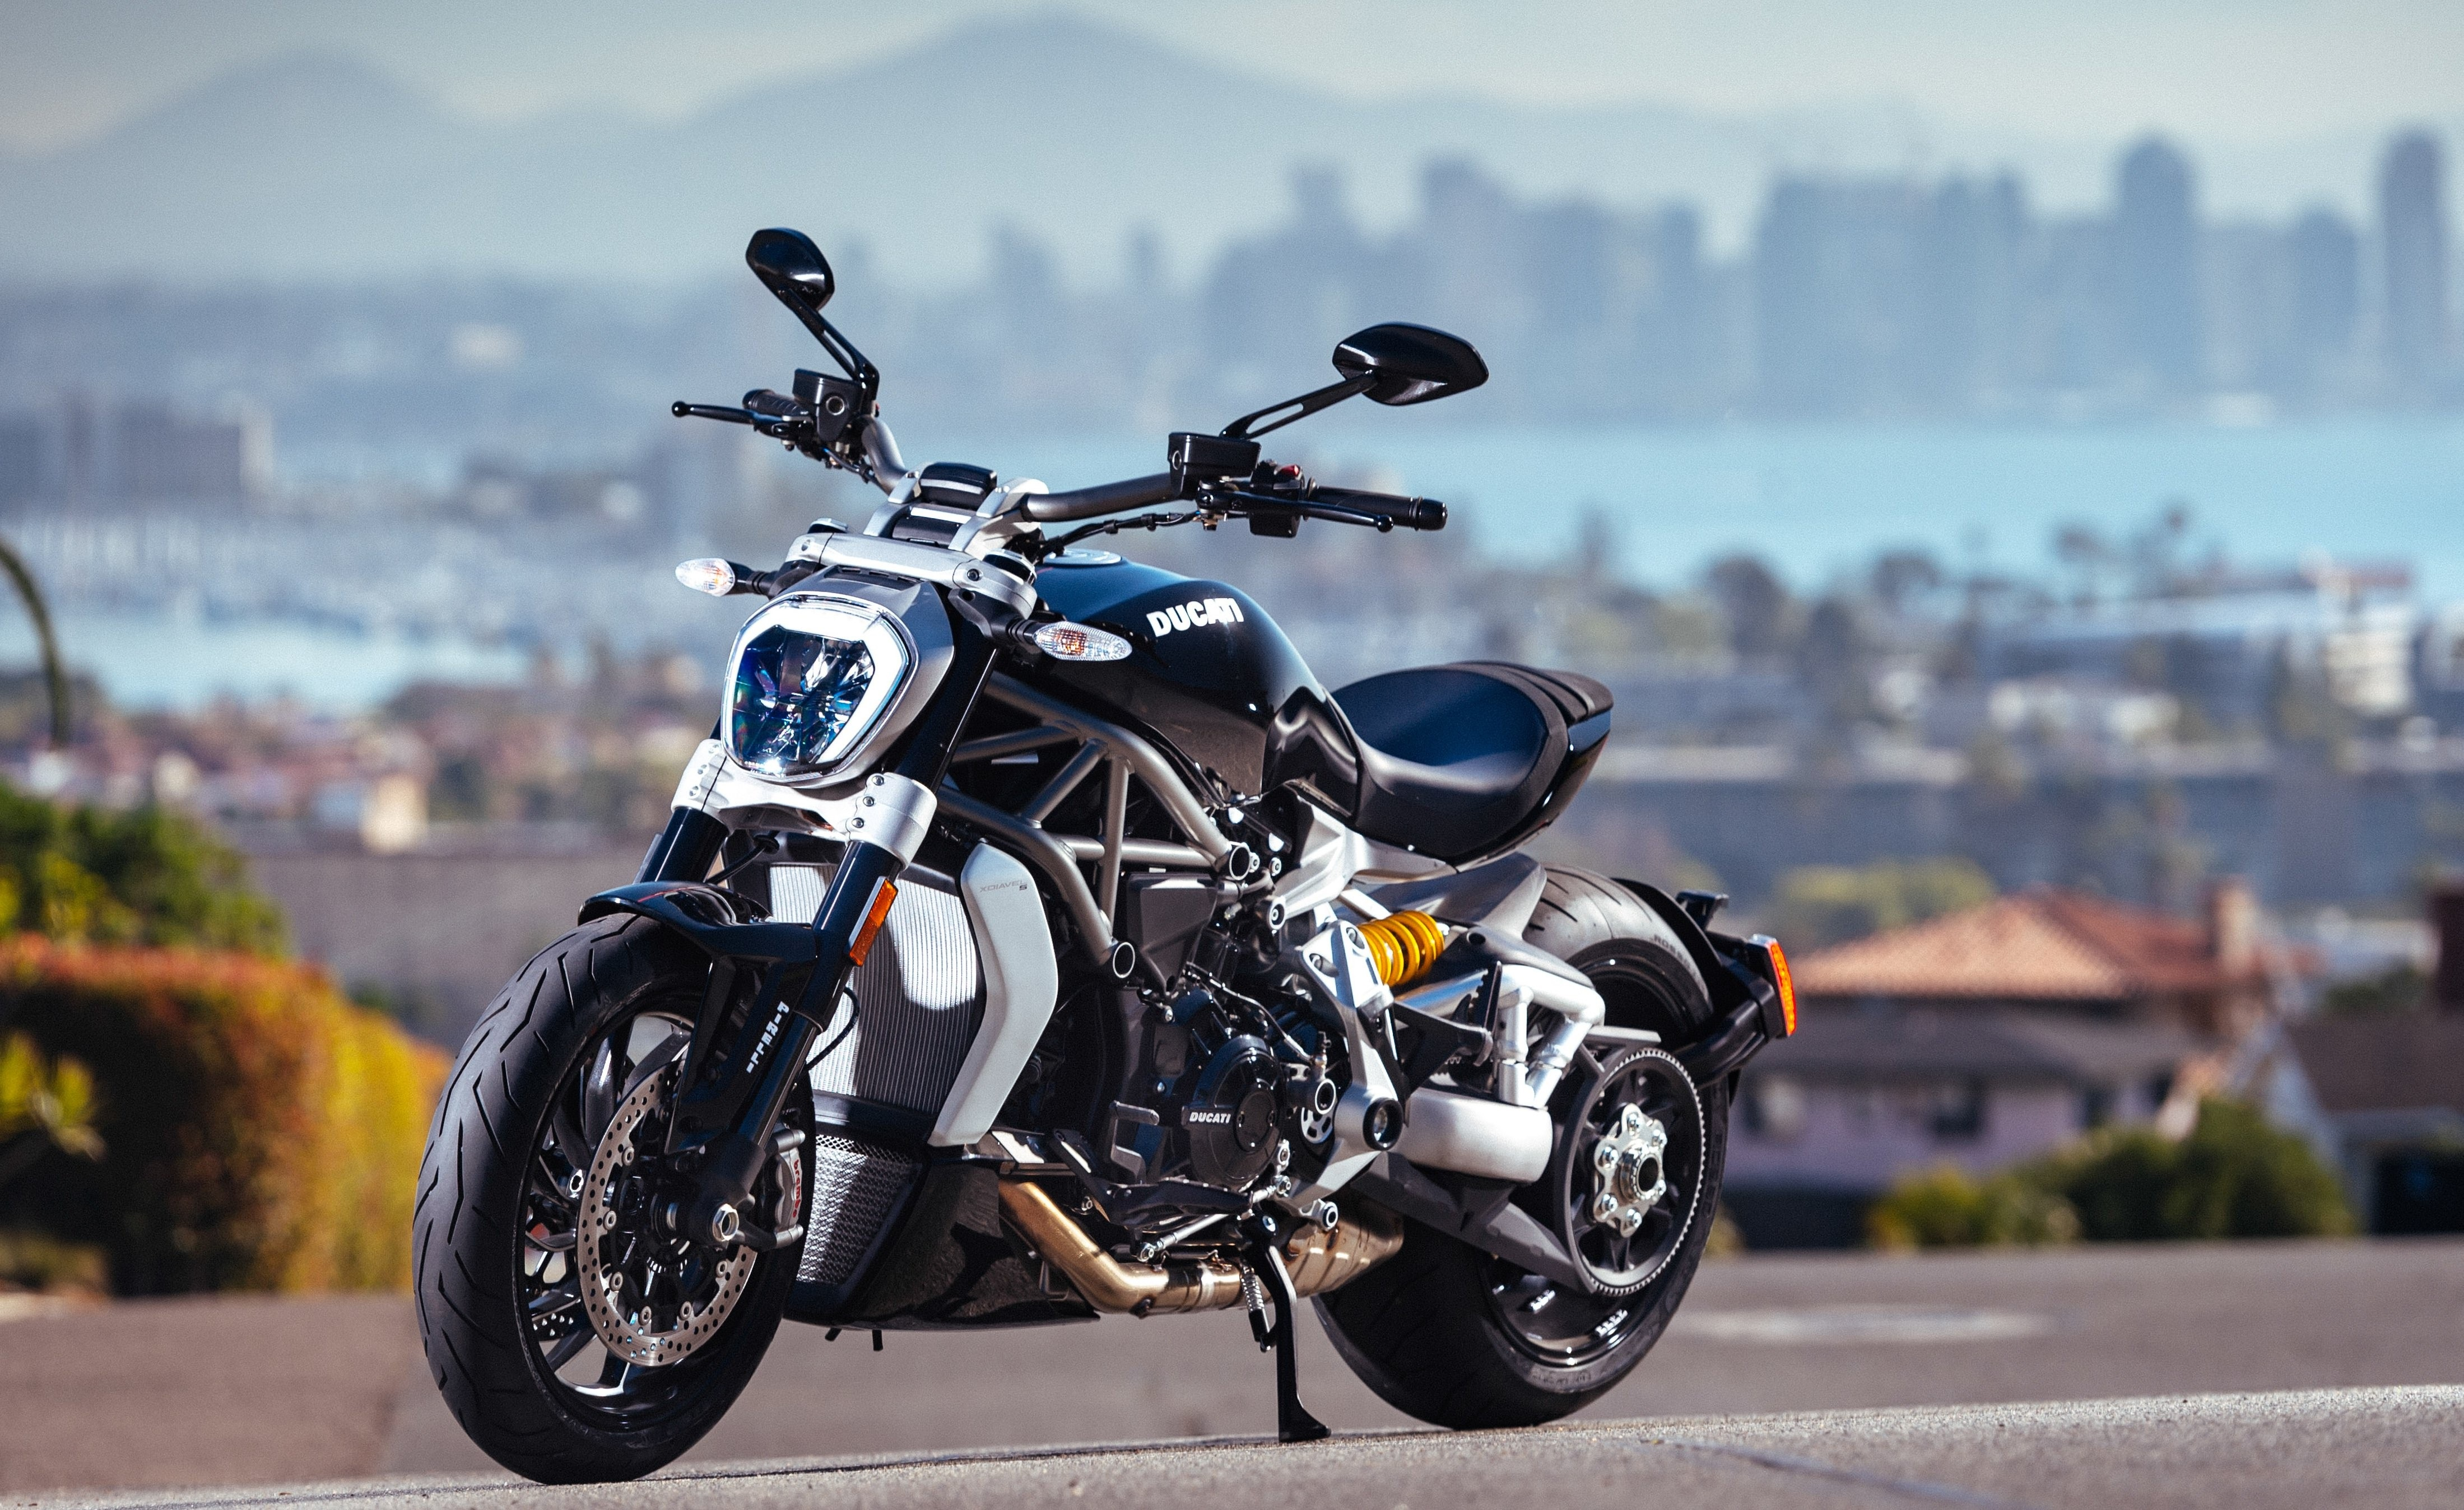 Download hd bike wallpapers 1080p gallery - Best wallpapers of cars and bikes ...